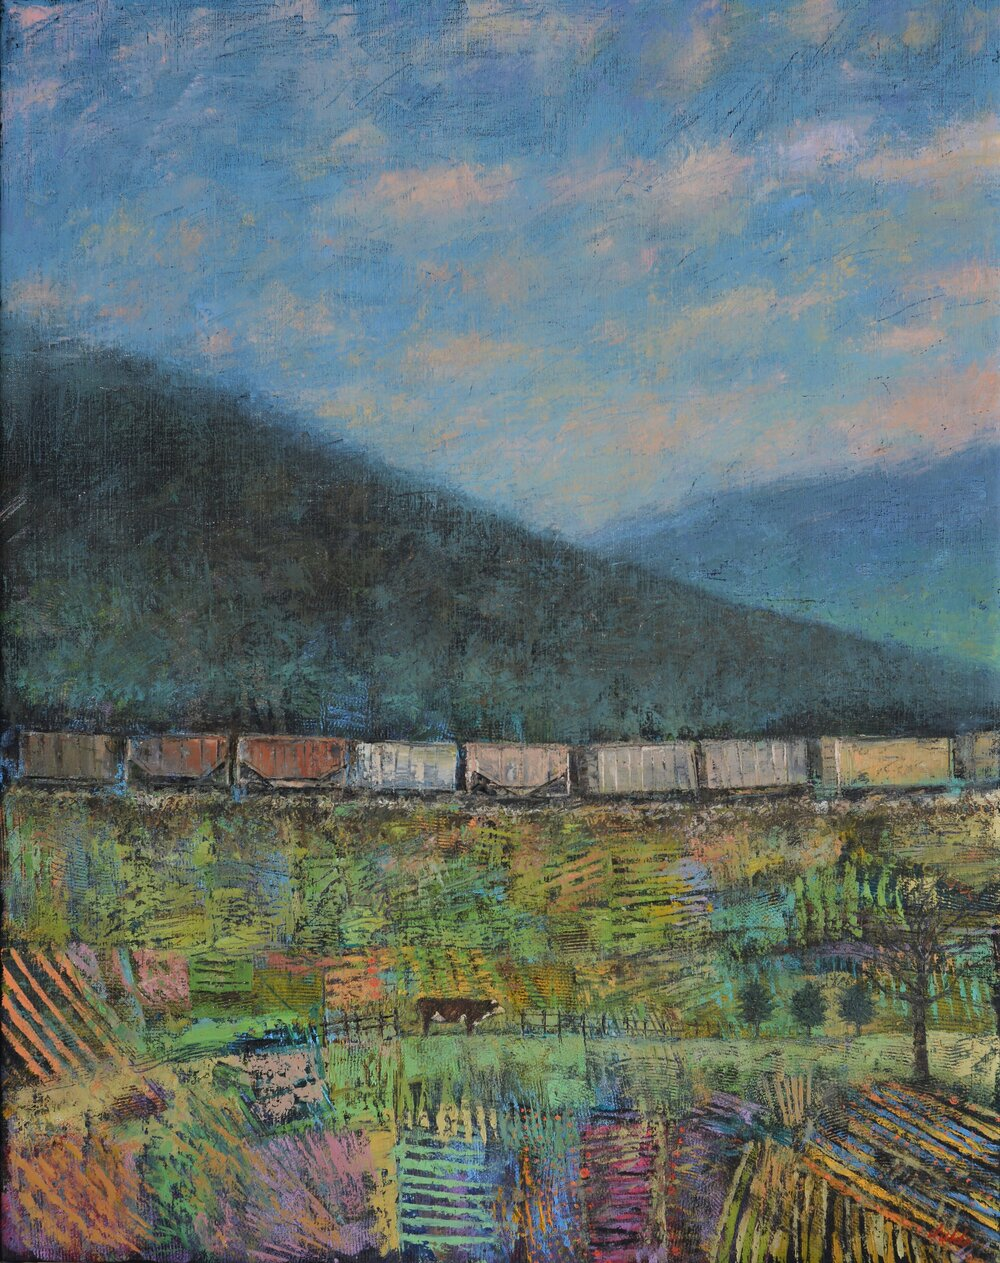 Near Asheville - 38x30